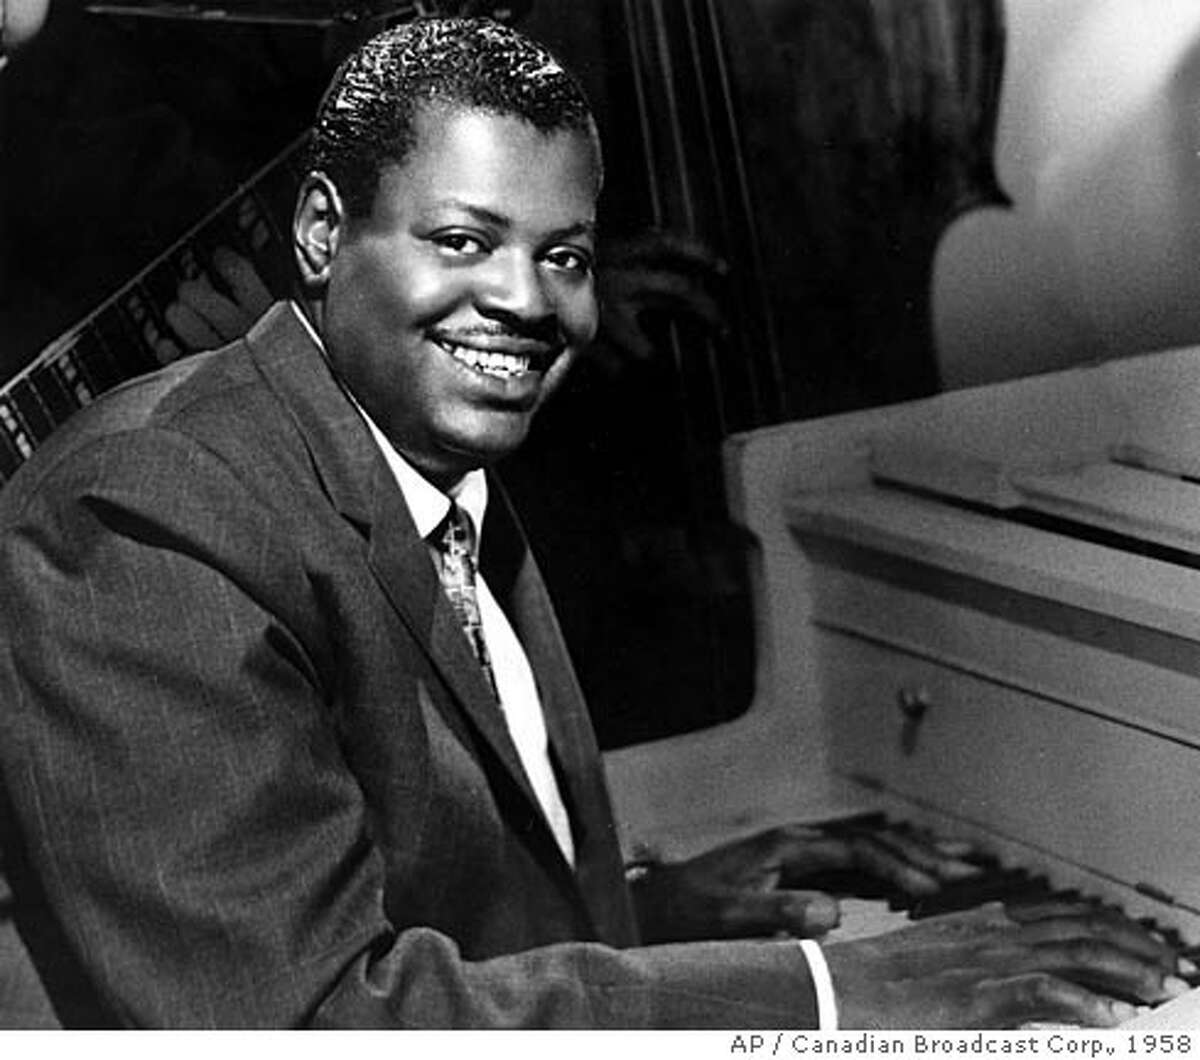 ** FILE ** Oscar Peterson poses in this undated 1958 photo provided by the Canadian Broadcast Corp. Peterson, whose early talent and speedy fingers made him one of the world's best known jazz pianists, died Sunday Dec. 23, 2007 at age 82. (AP Photo/The Canadian Press, CBC)